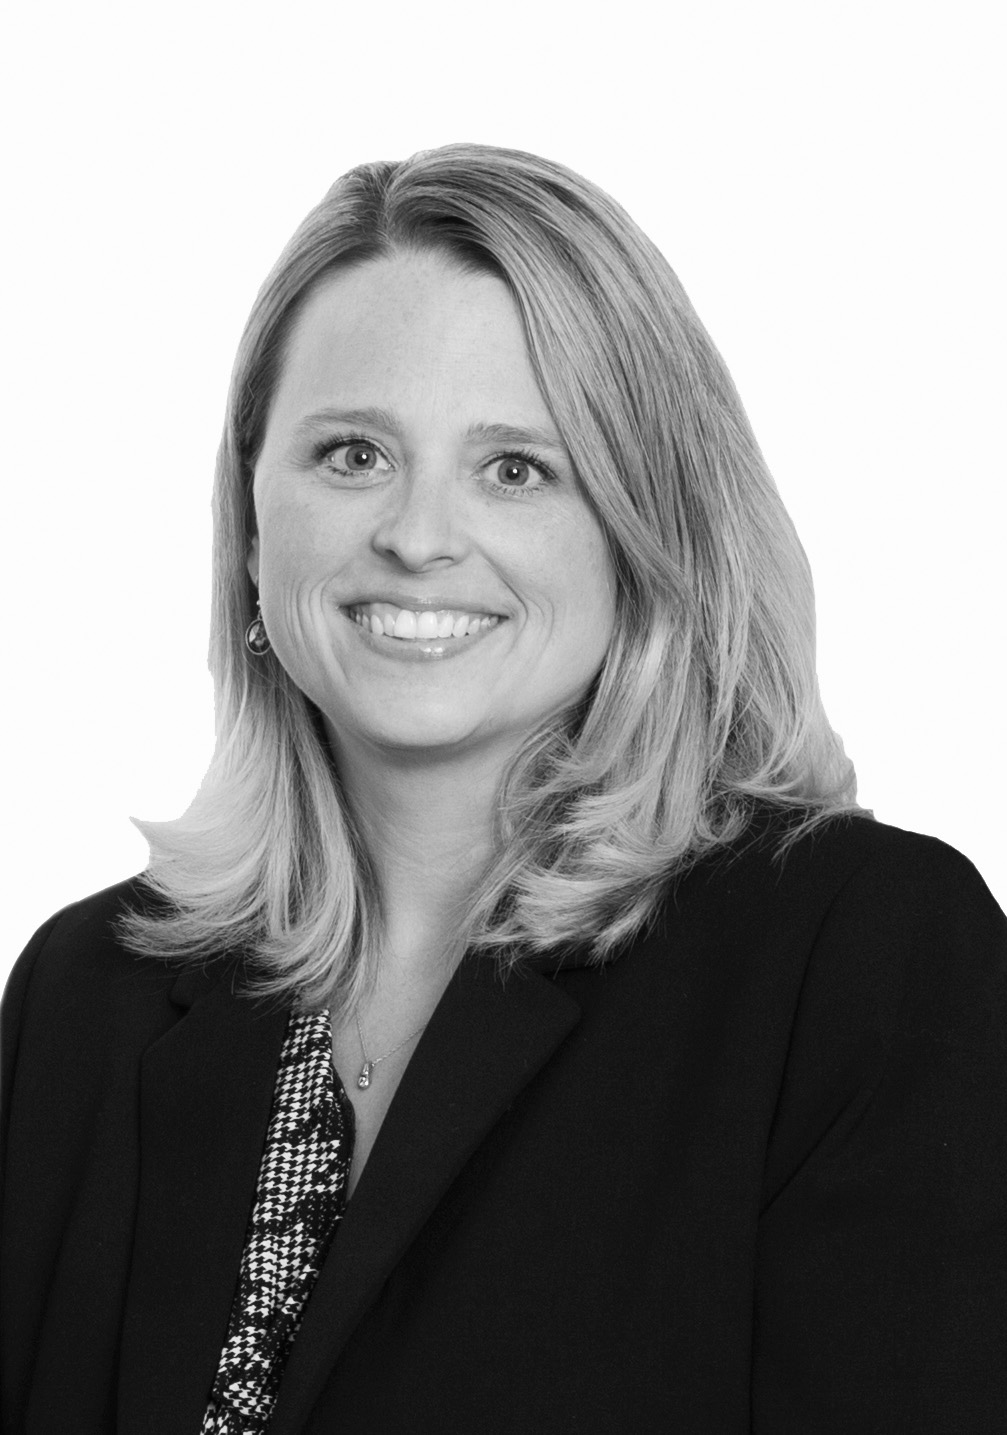 """Shelley Drury Joins The Doty Group, P.S. - """"Ms. Drury has established herself as a qualified expert with a great deal of objectivity and integrity,"""" said Paul Doty, CPA, owner of The Doty Group. """"We are excited to welcome her to our team and support her in creating and building a successful valuation and litigation department."""""""